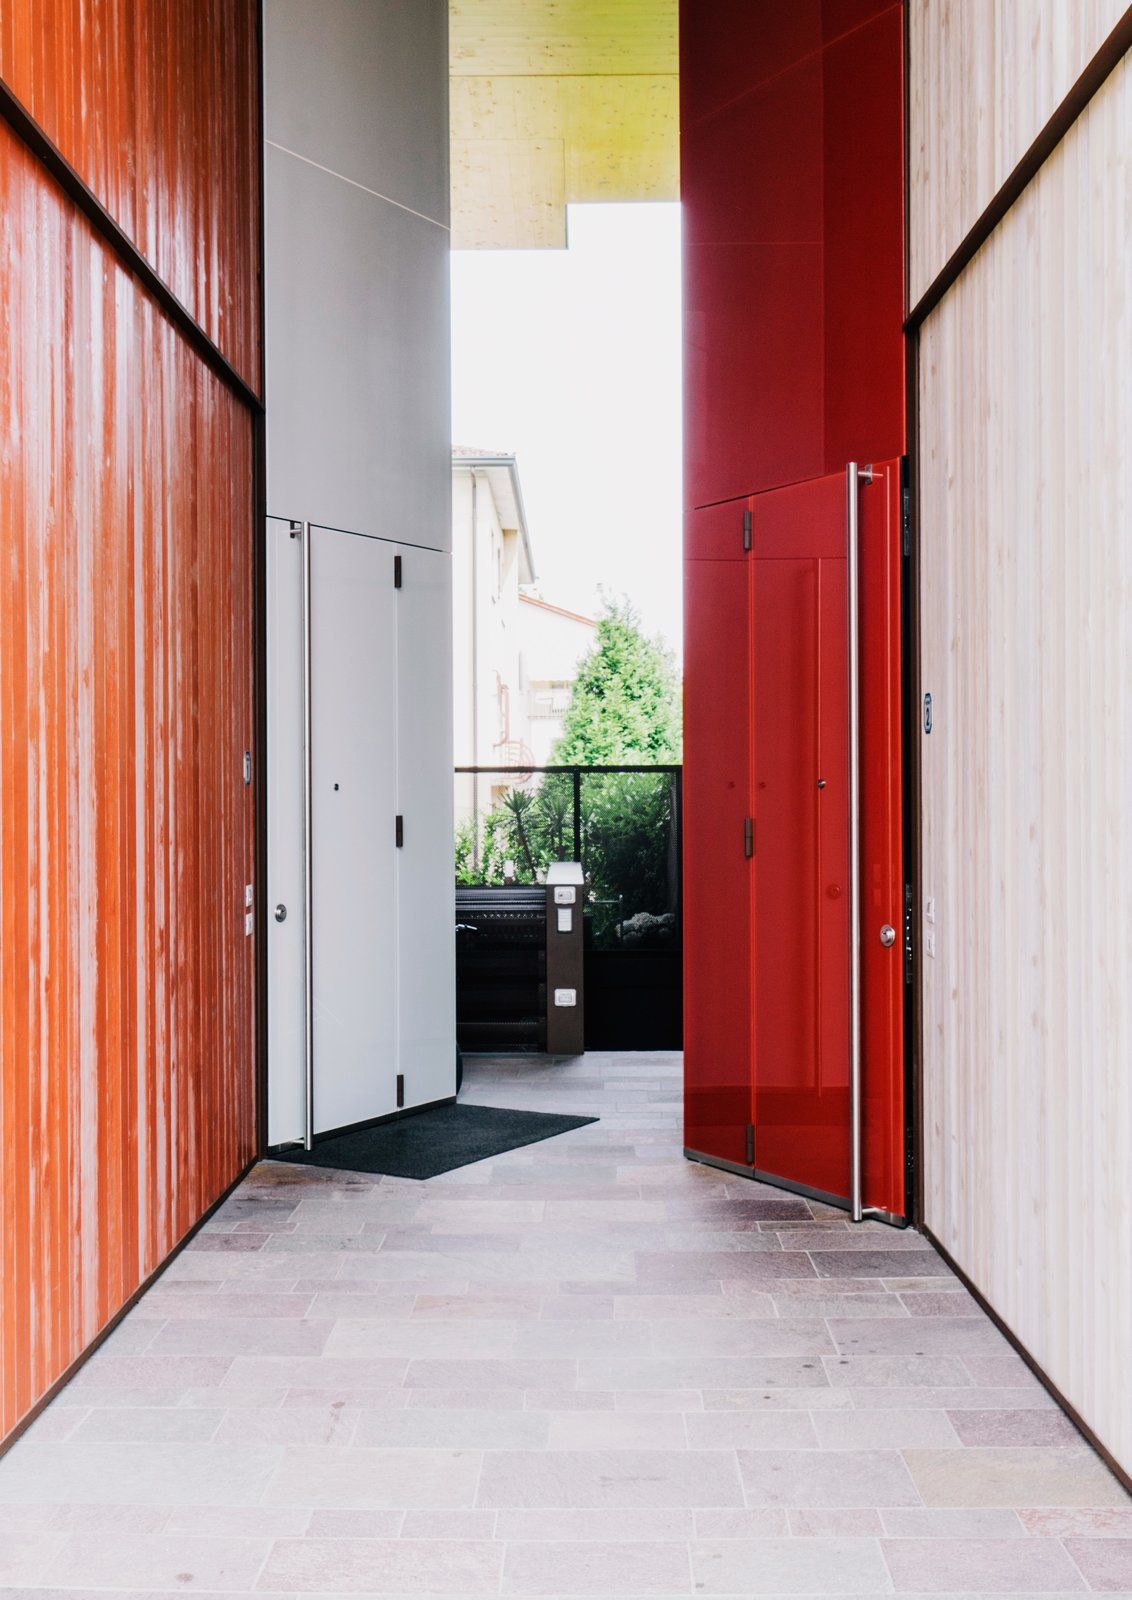 Color is one way the architects differentiated the structures, as in the custom doors they designed for the entrances in contrasting light and dark light finishes.  Photo 2 of 8 in Could You Share Your Dream Home?